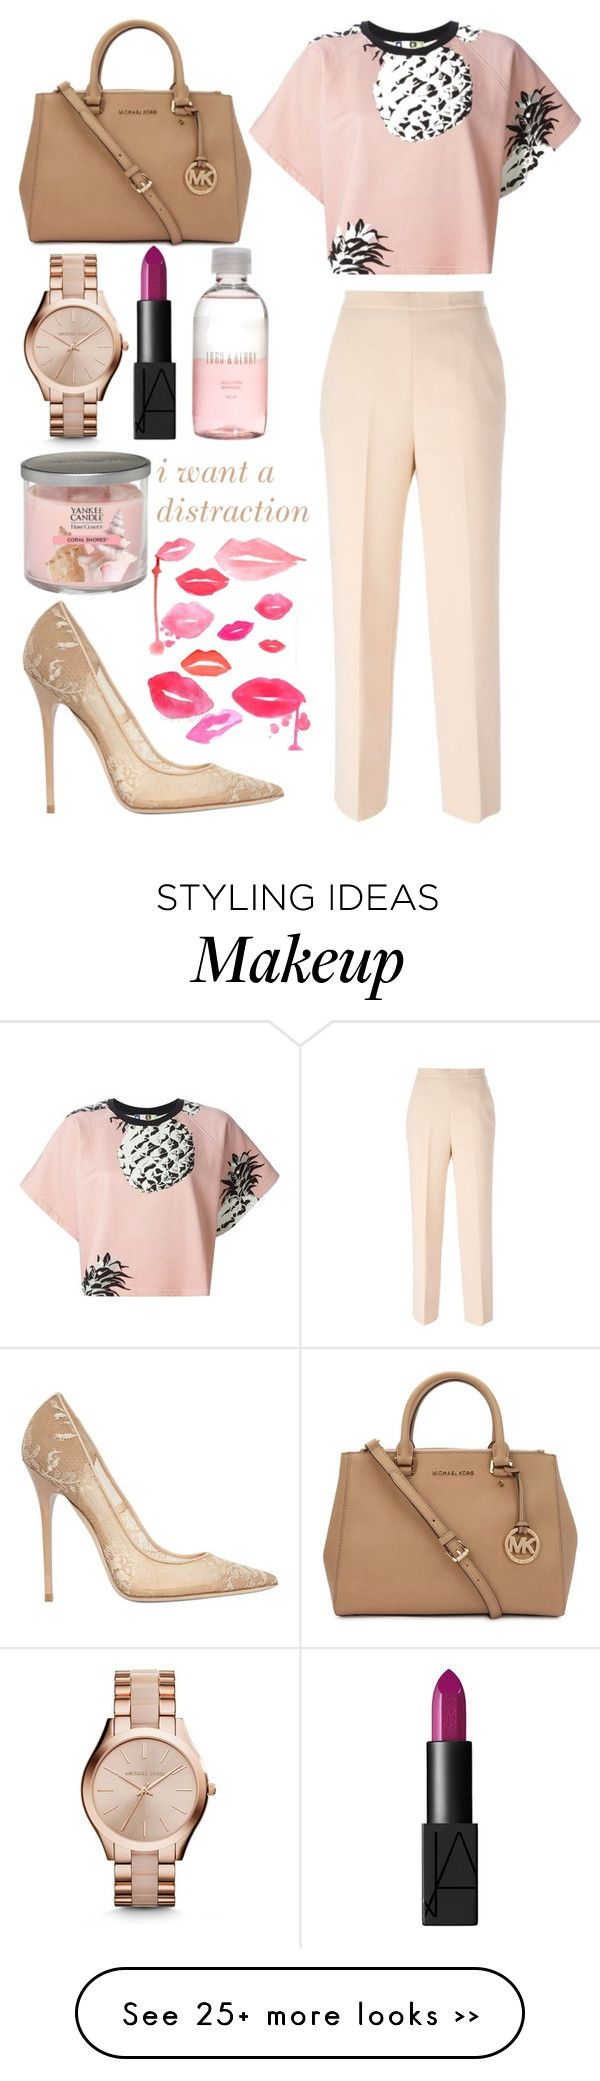 """""""unusually"""" by cuteprincess28 on Polyvore"""